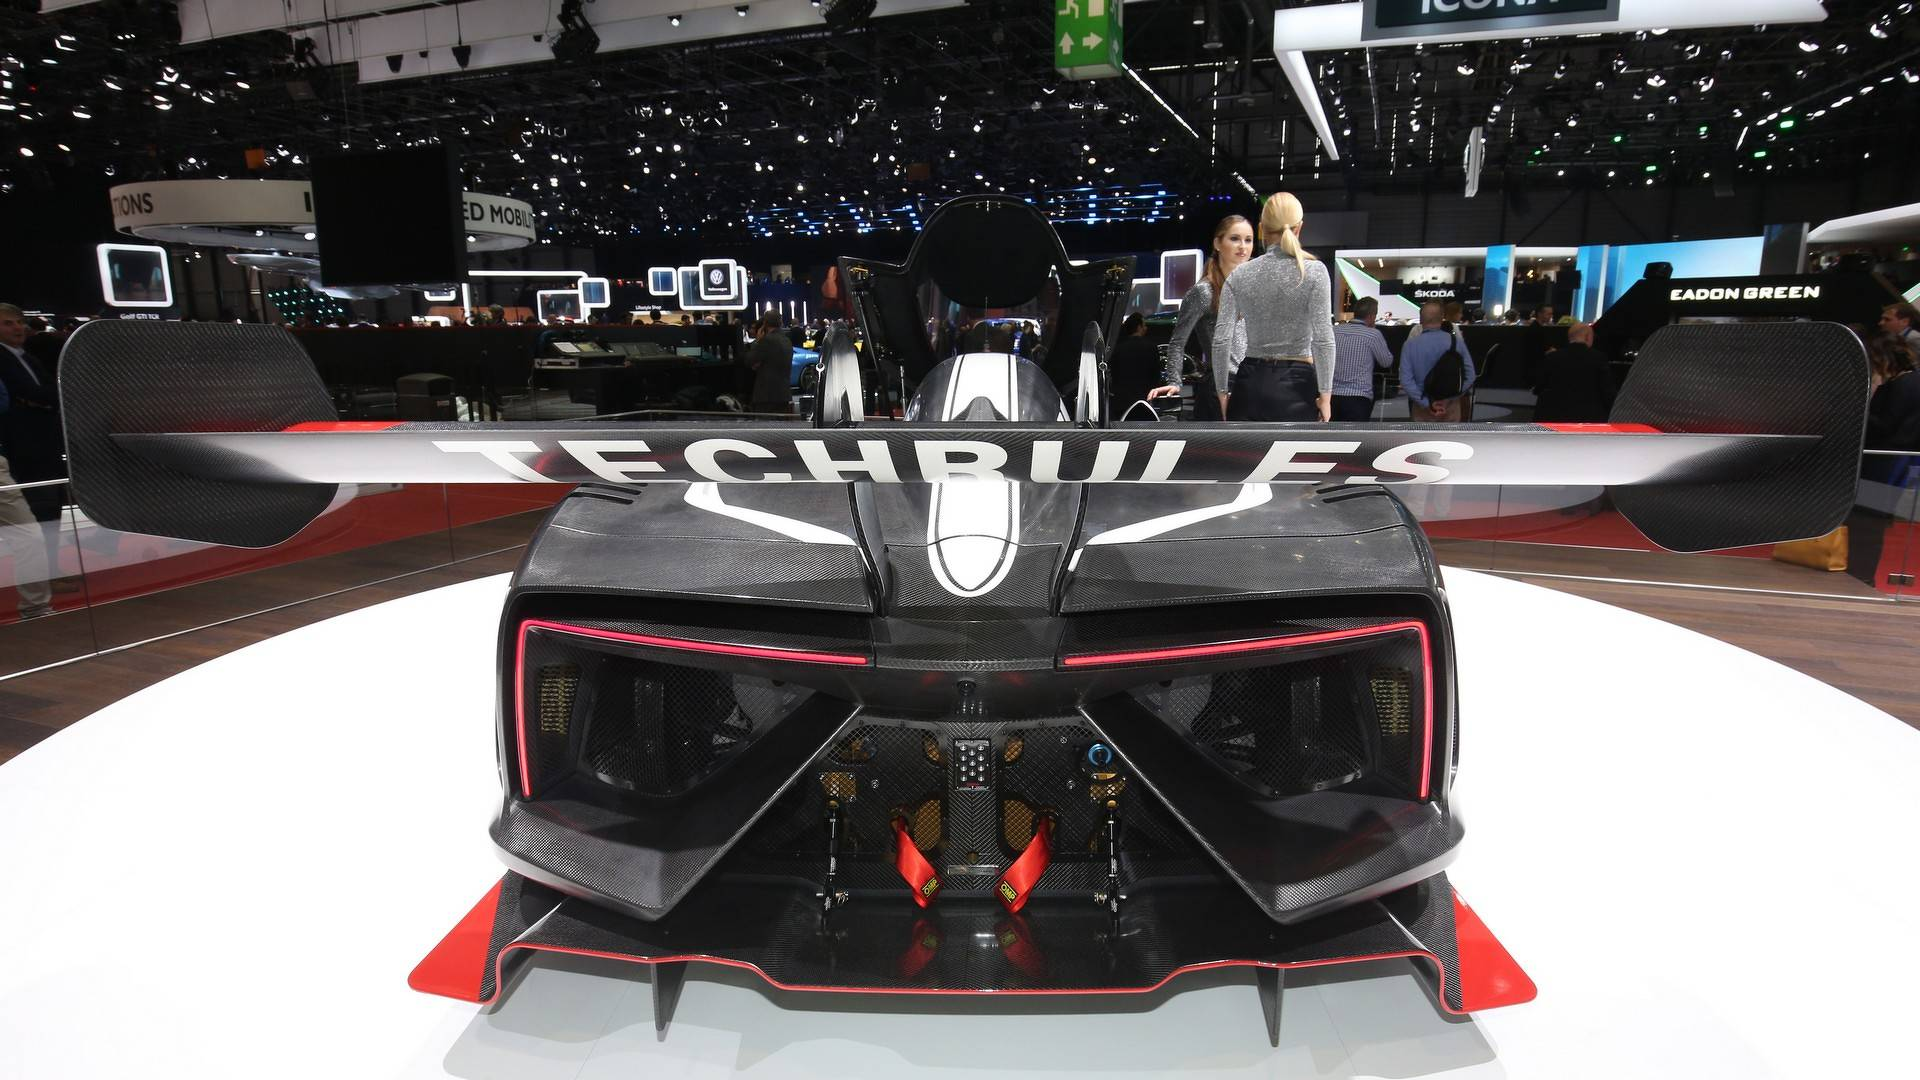 Turbine-Powered Techrules Ren RS Live From Geneva Motor Show